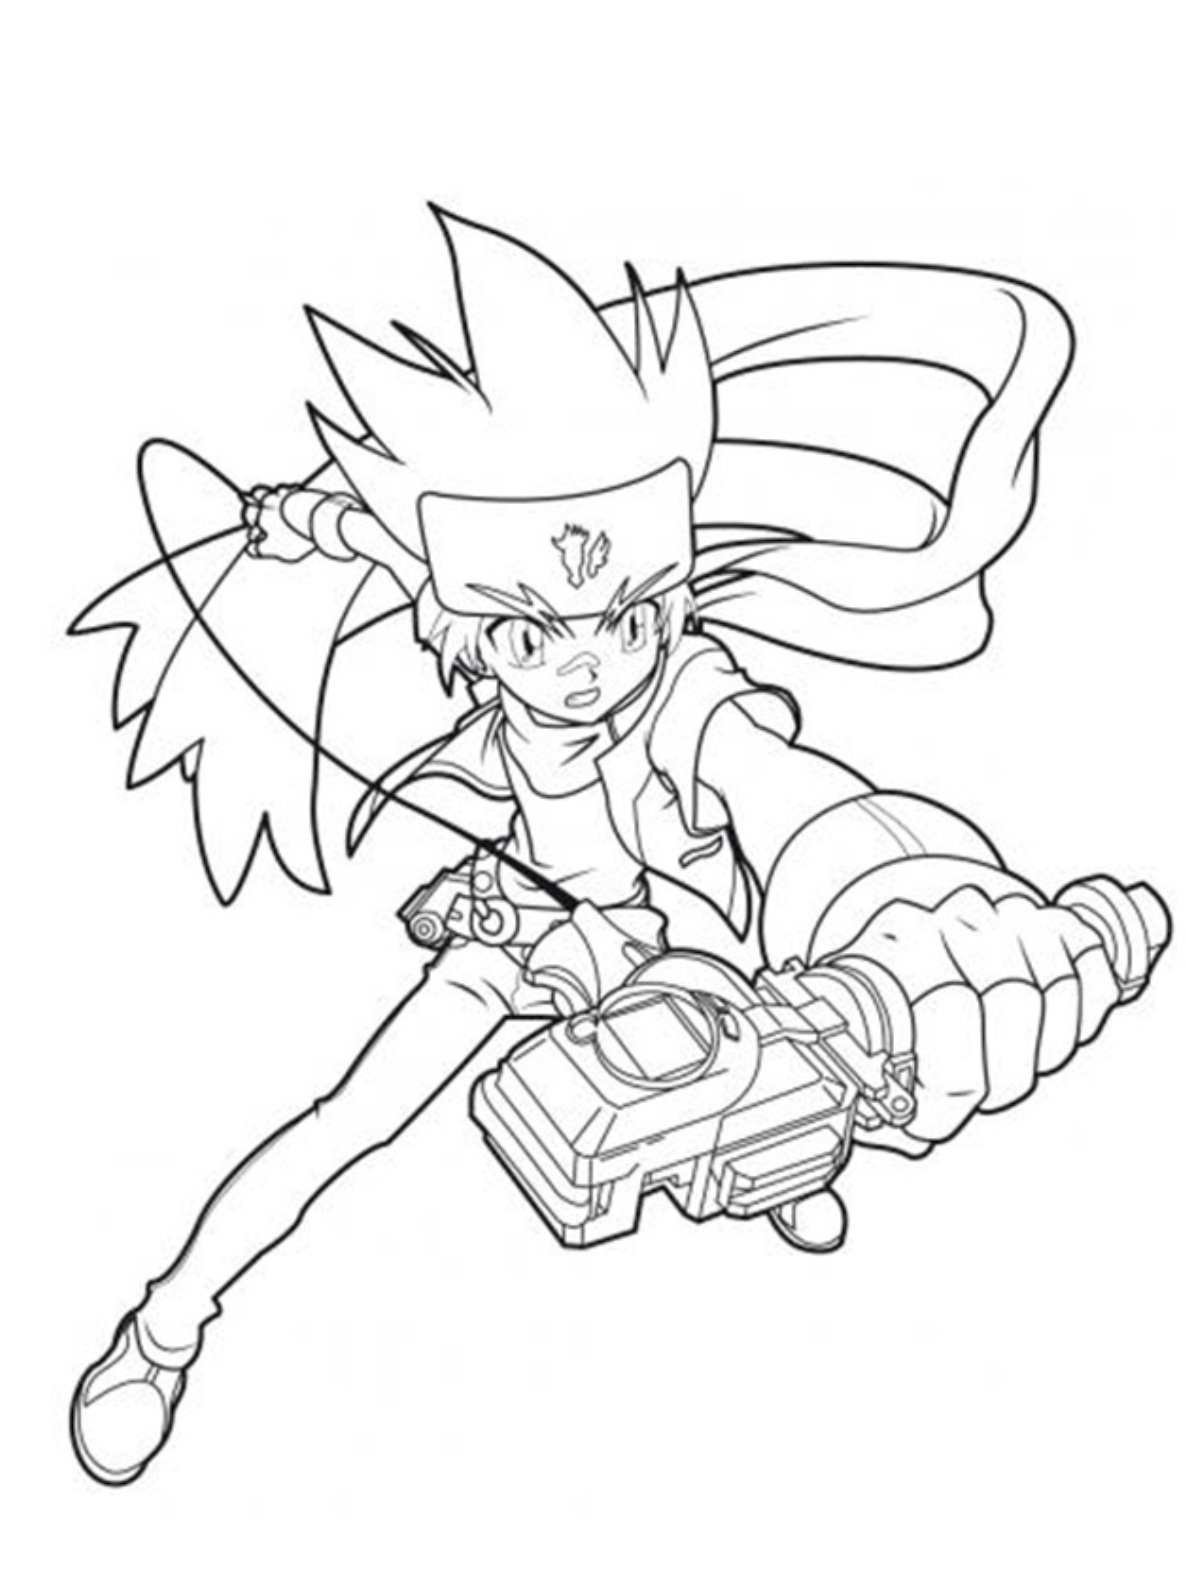 beyblade coloring sheets - Beyblade Coloring Pages